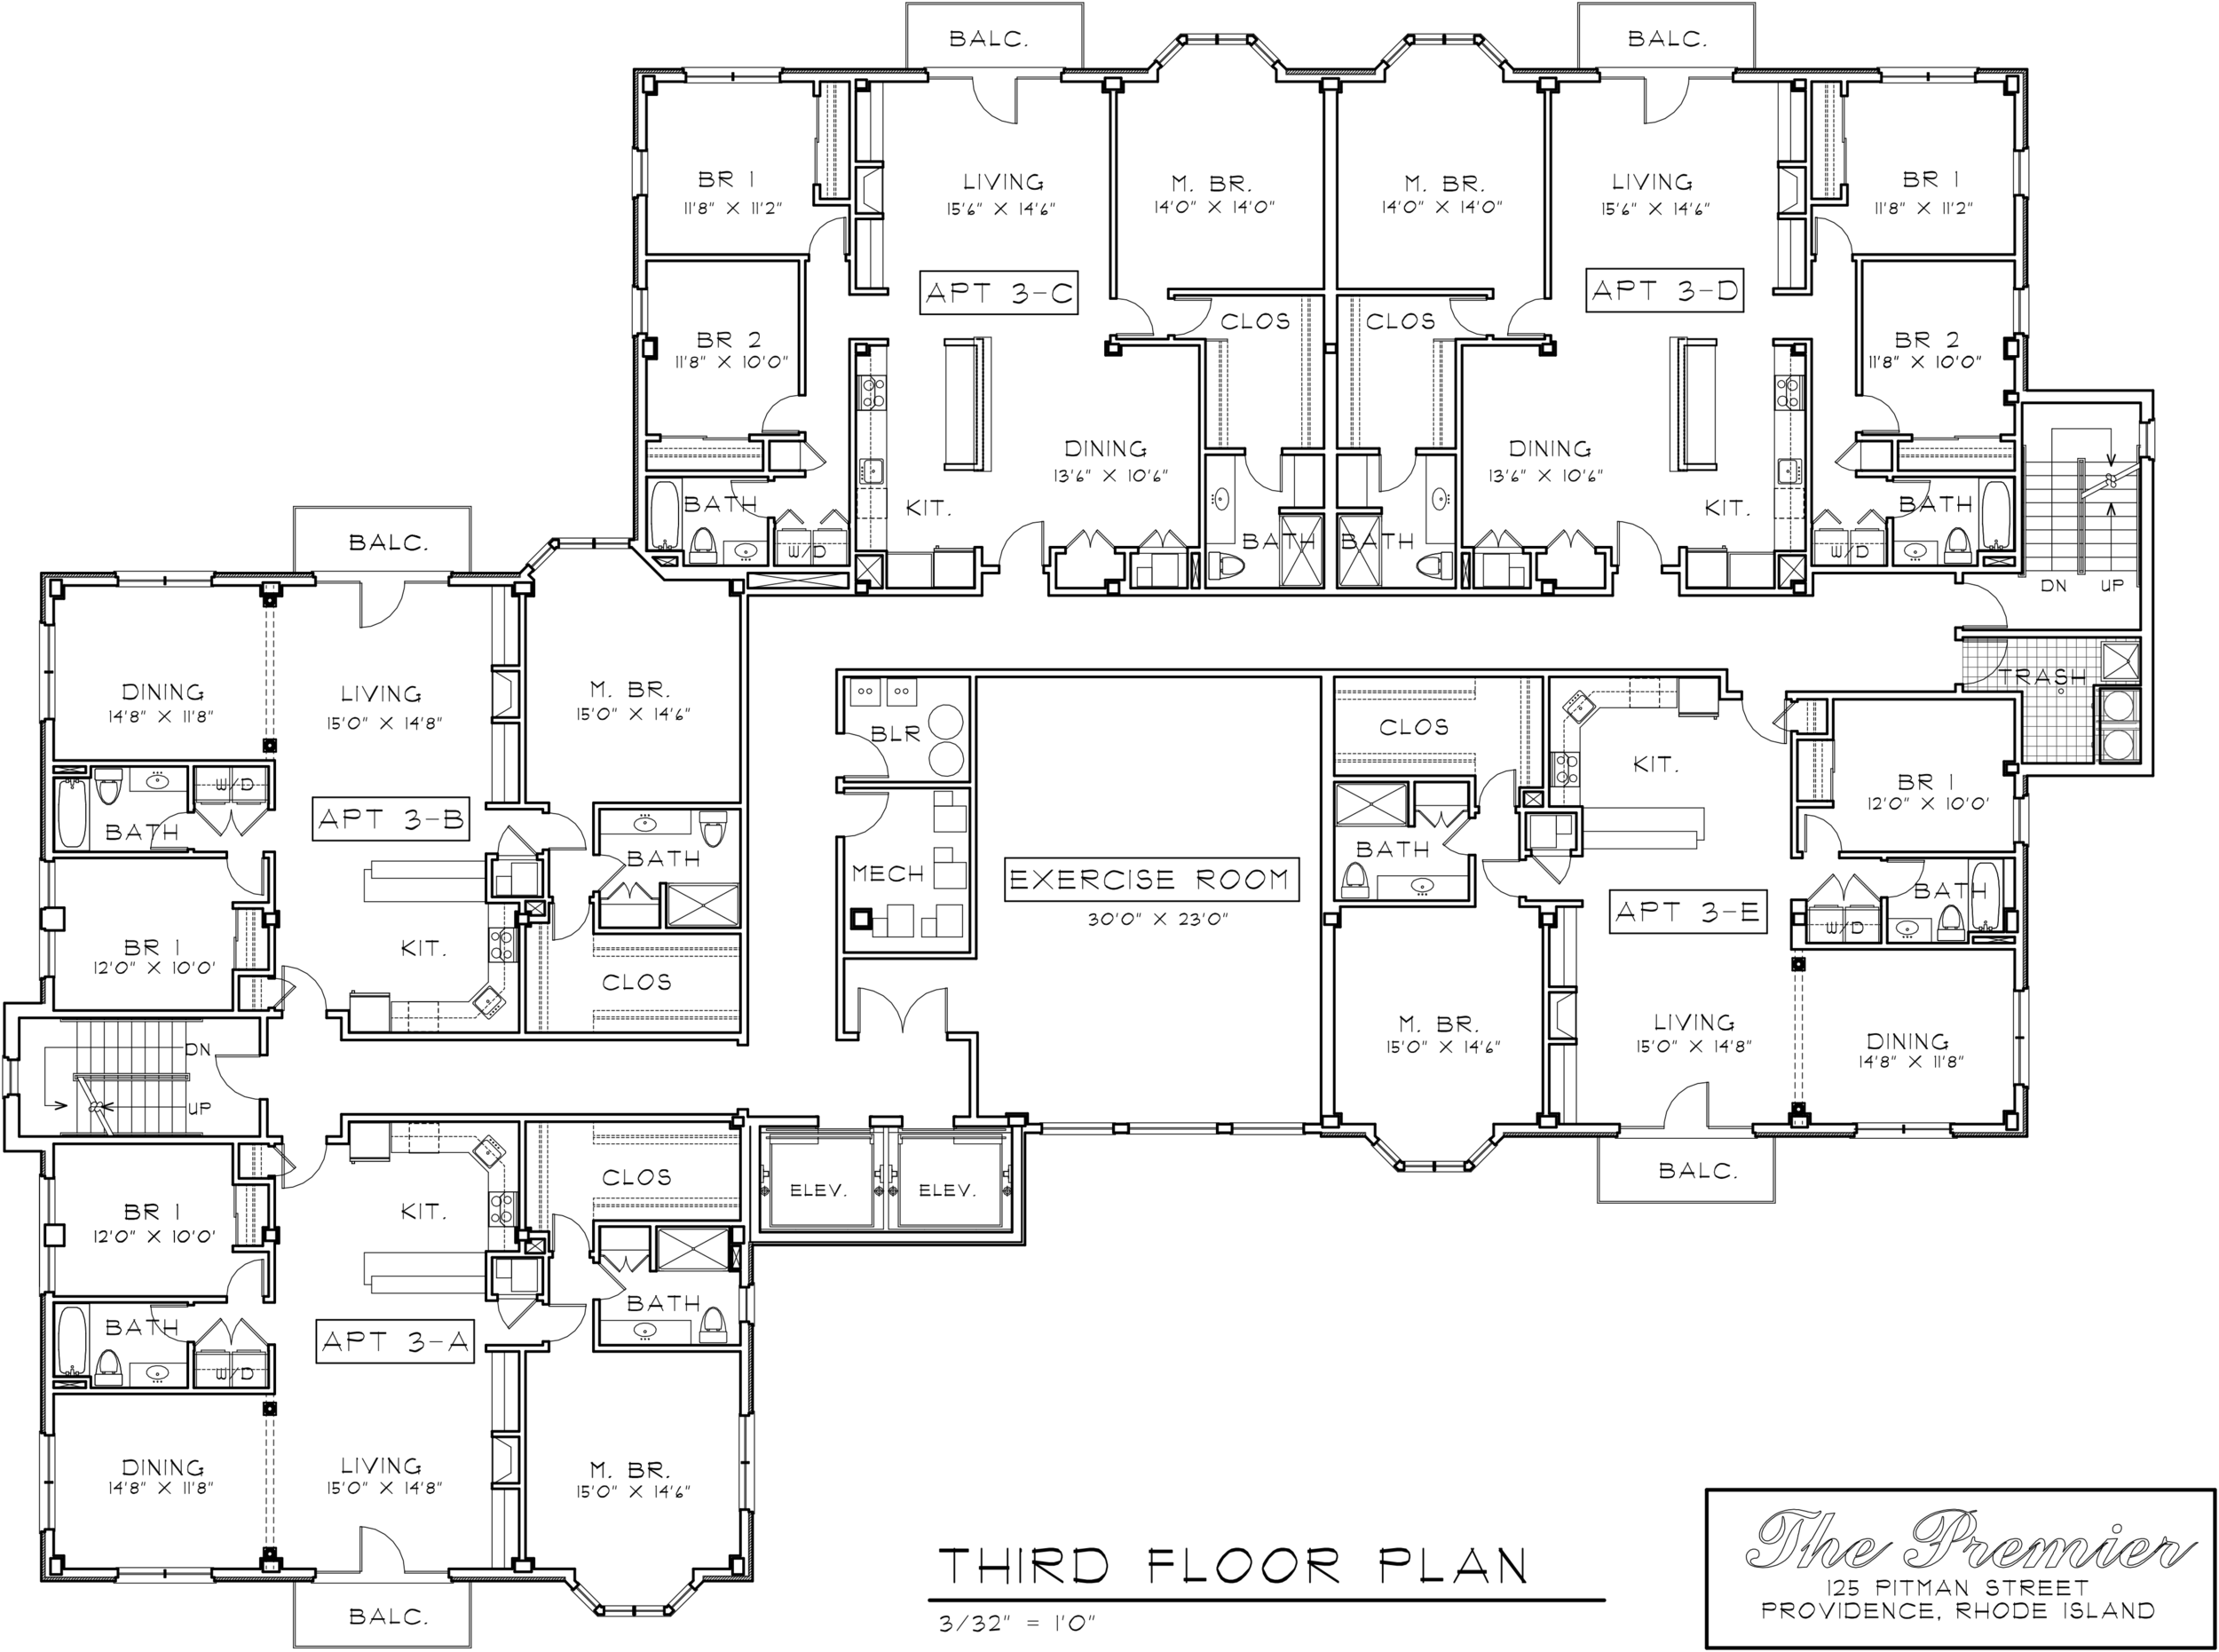 Floorplans the premier apartments. Floor plans png clipart freeuse library